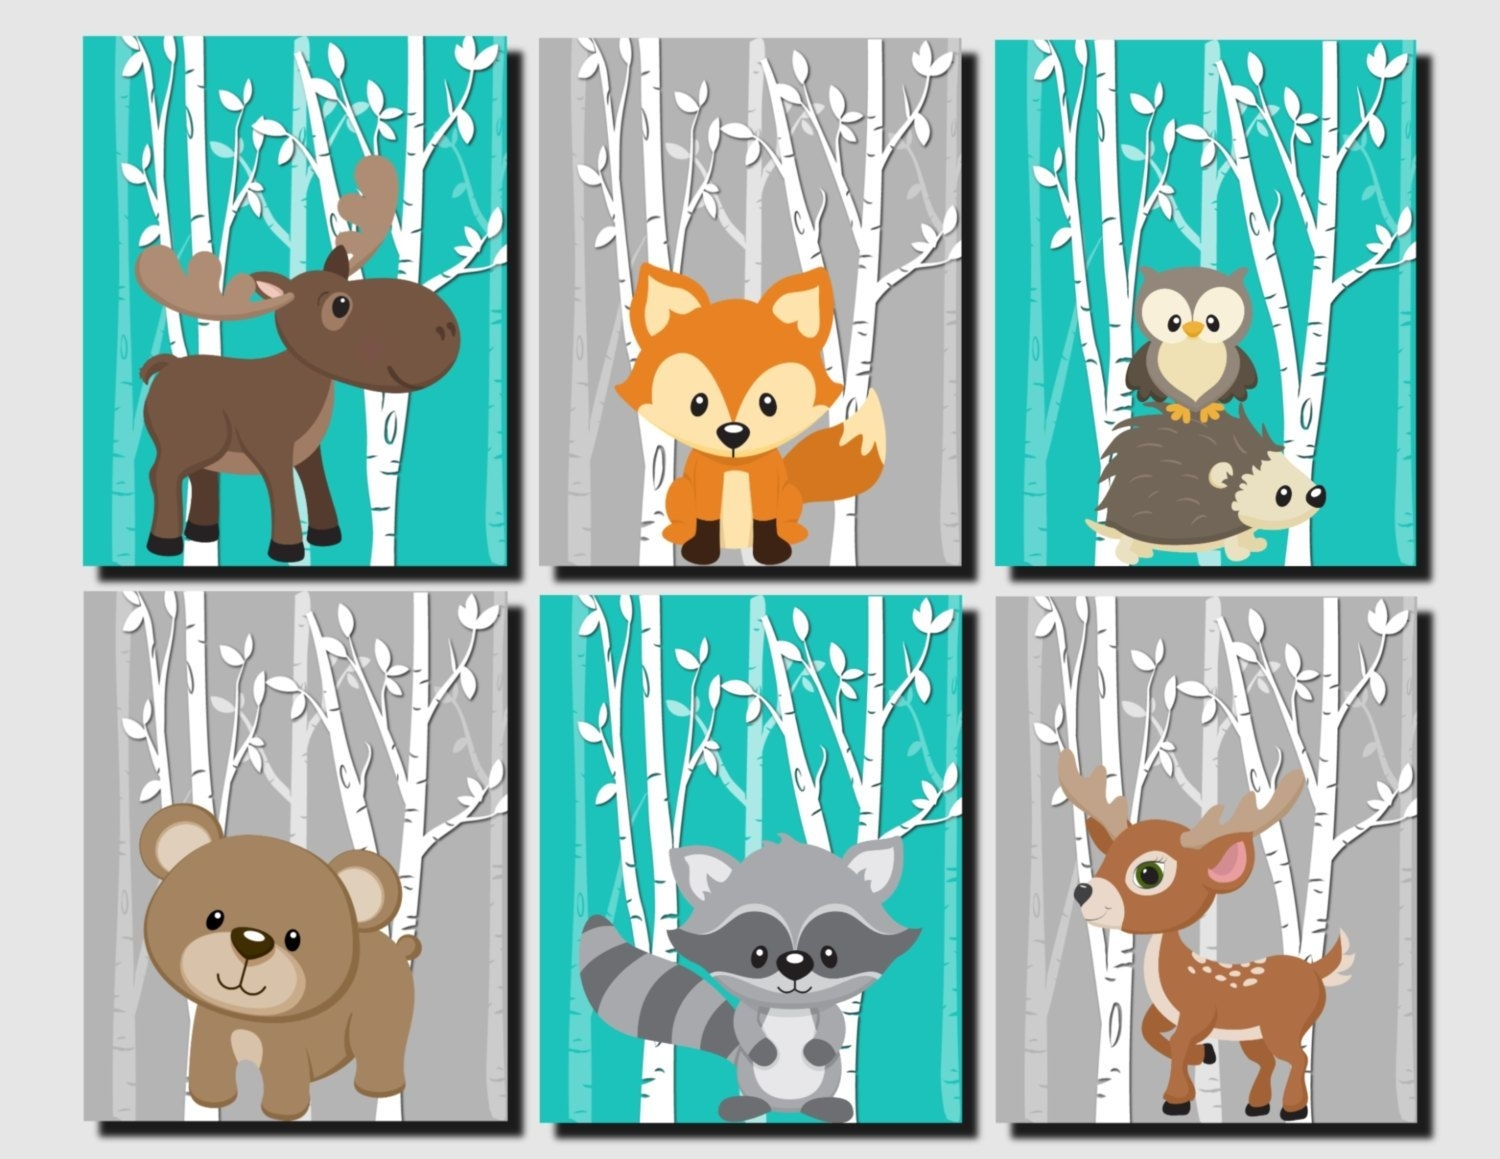 Woodland Nursery, Woodland Wall Decor Kids, Teal, Gray, Forest Pertaining To Most Recent Kids Wall Art (Gallery 2 of 15)